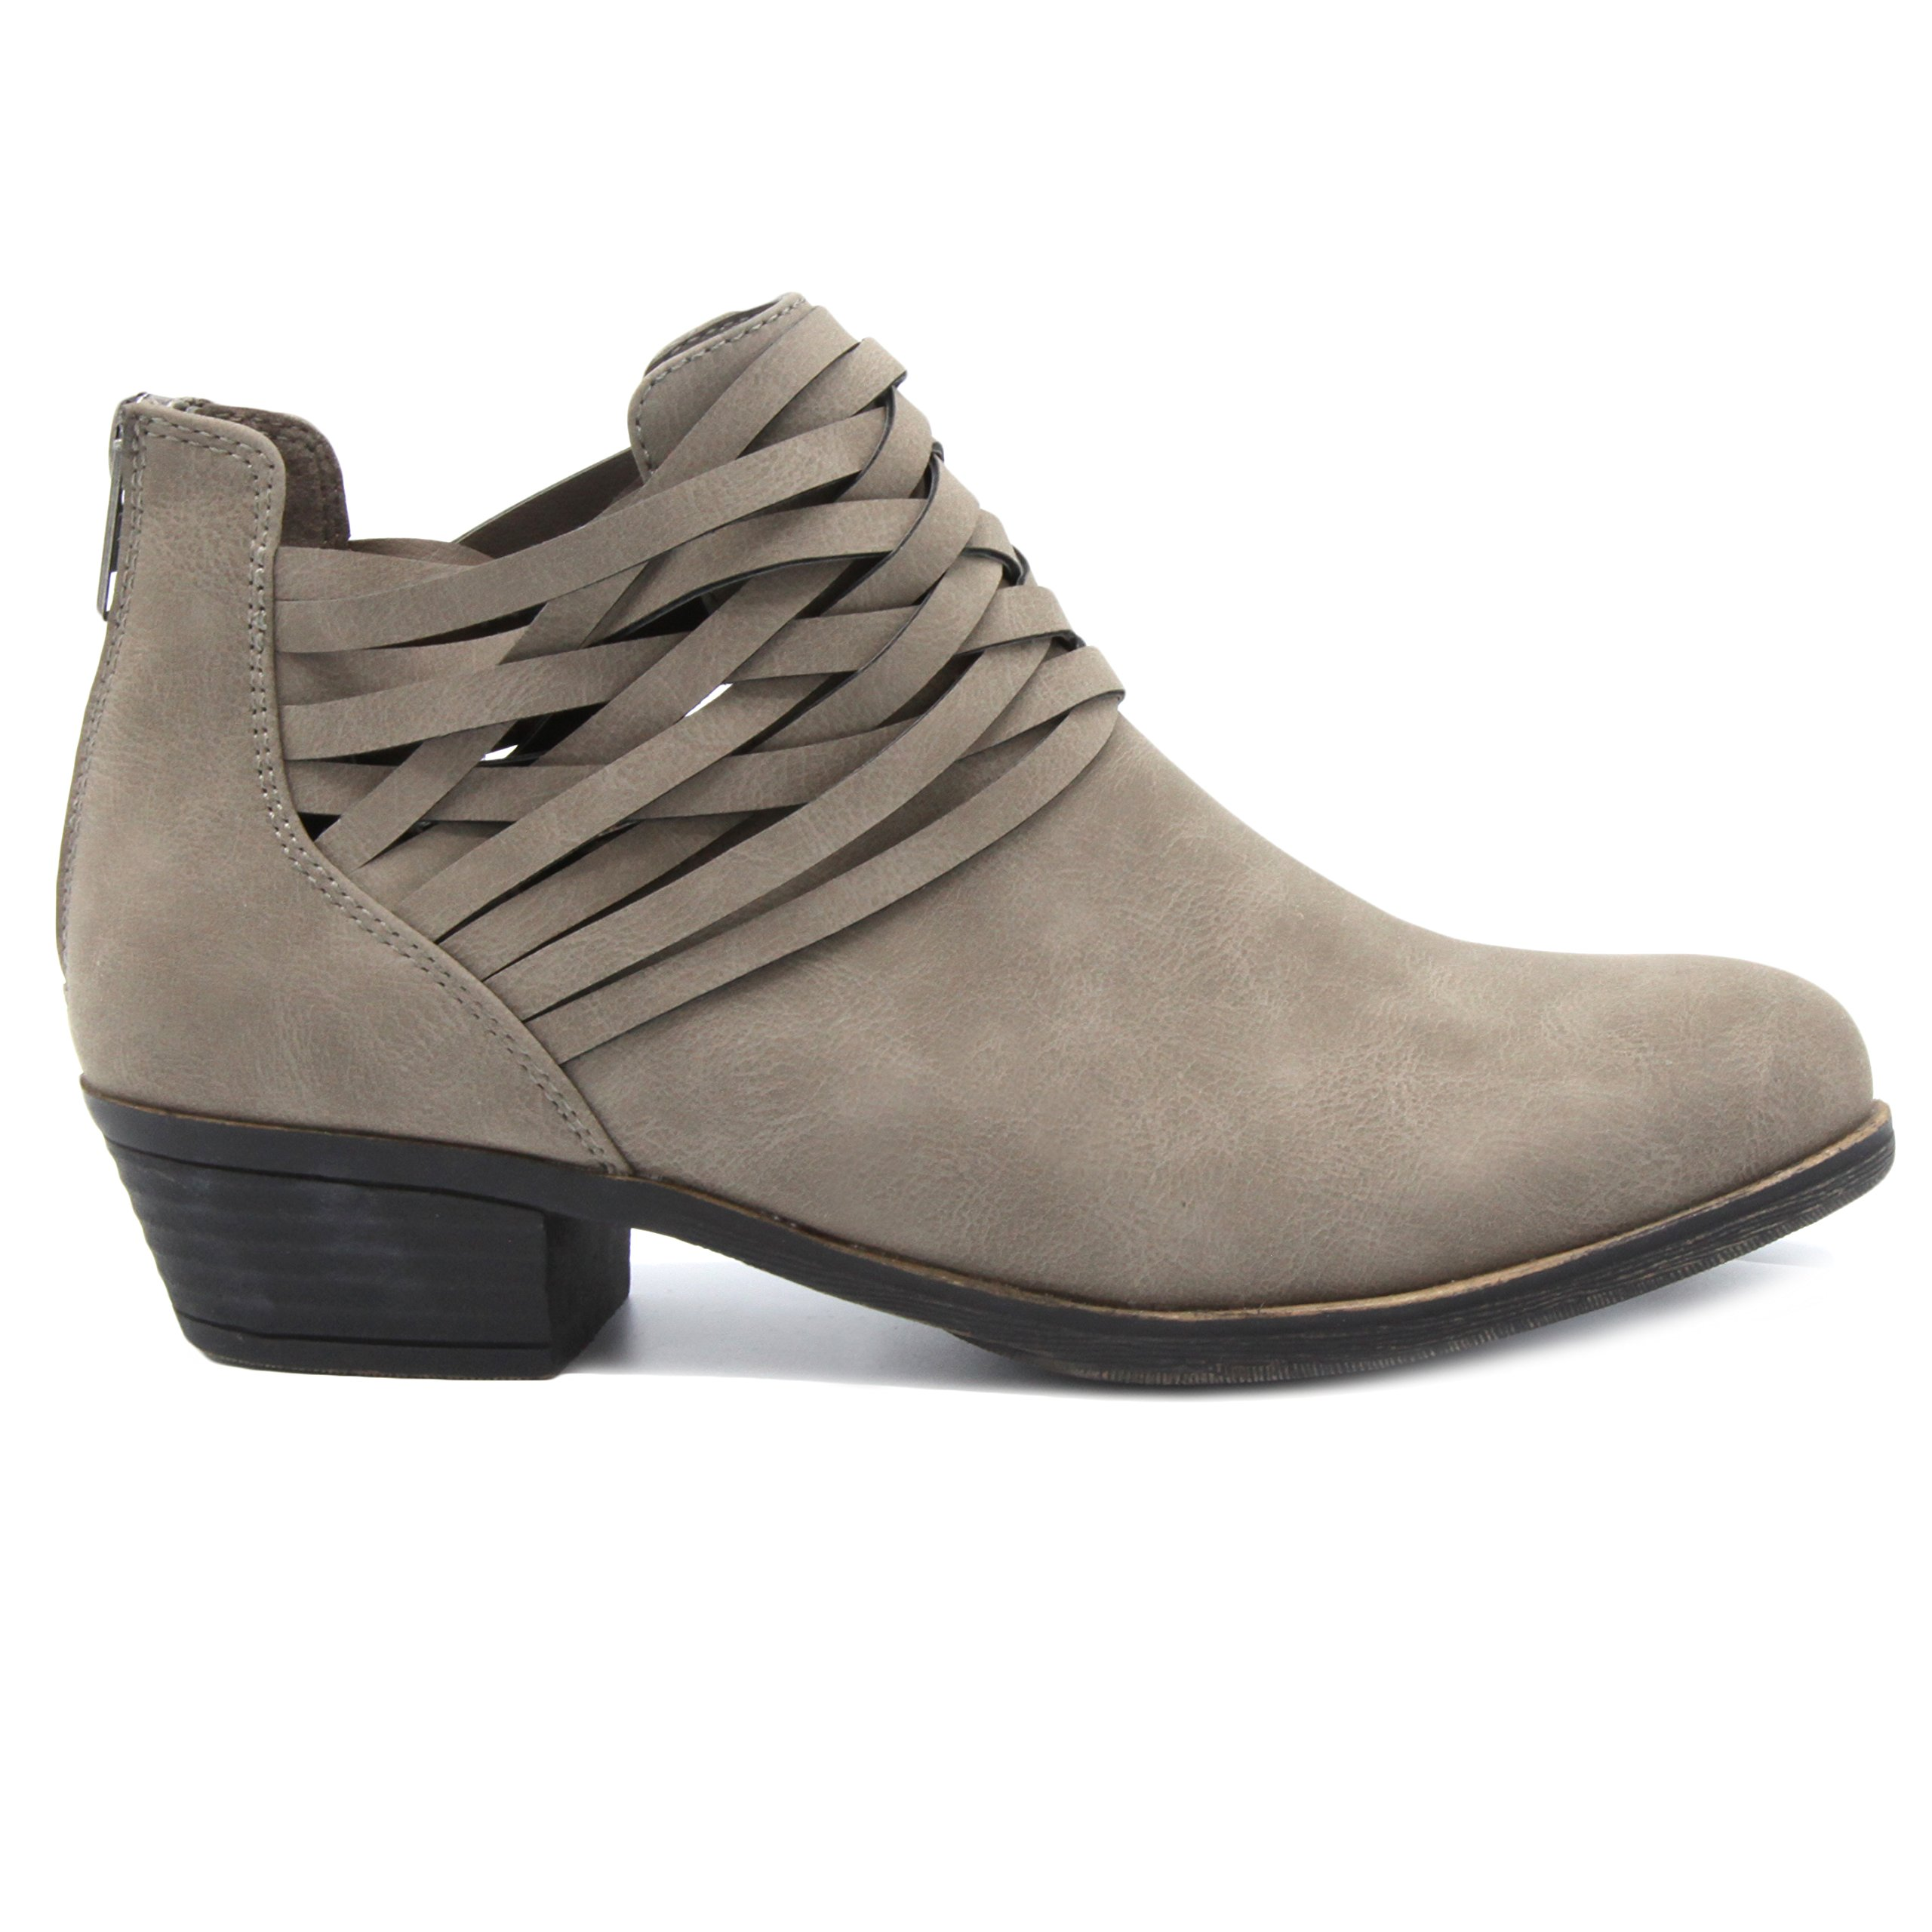 Sugar Women's Rhett Casual Boho Short Bootie with Criss Cross Straps Ankle Boot, Grey Distressed, 9 Medium US by Sugar (Image #8)